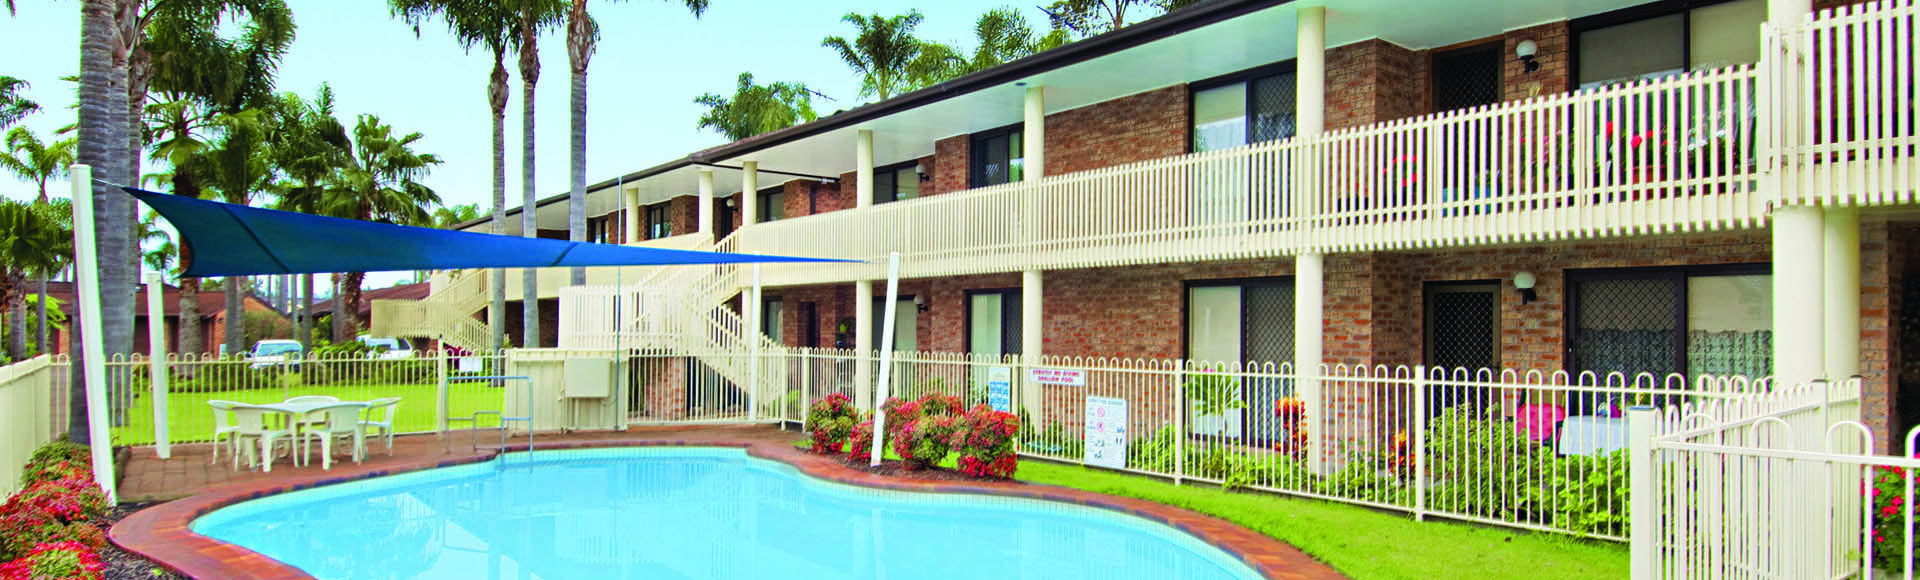 Over 50 Retirement Villages Lake Macquarie